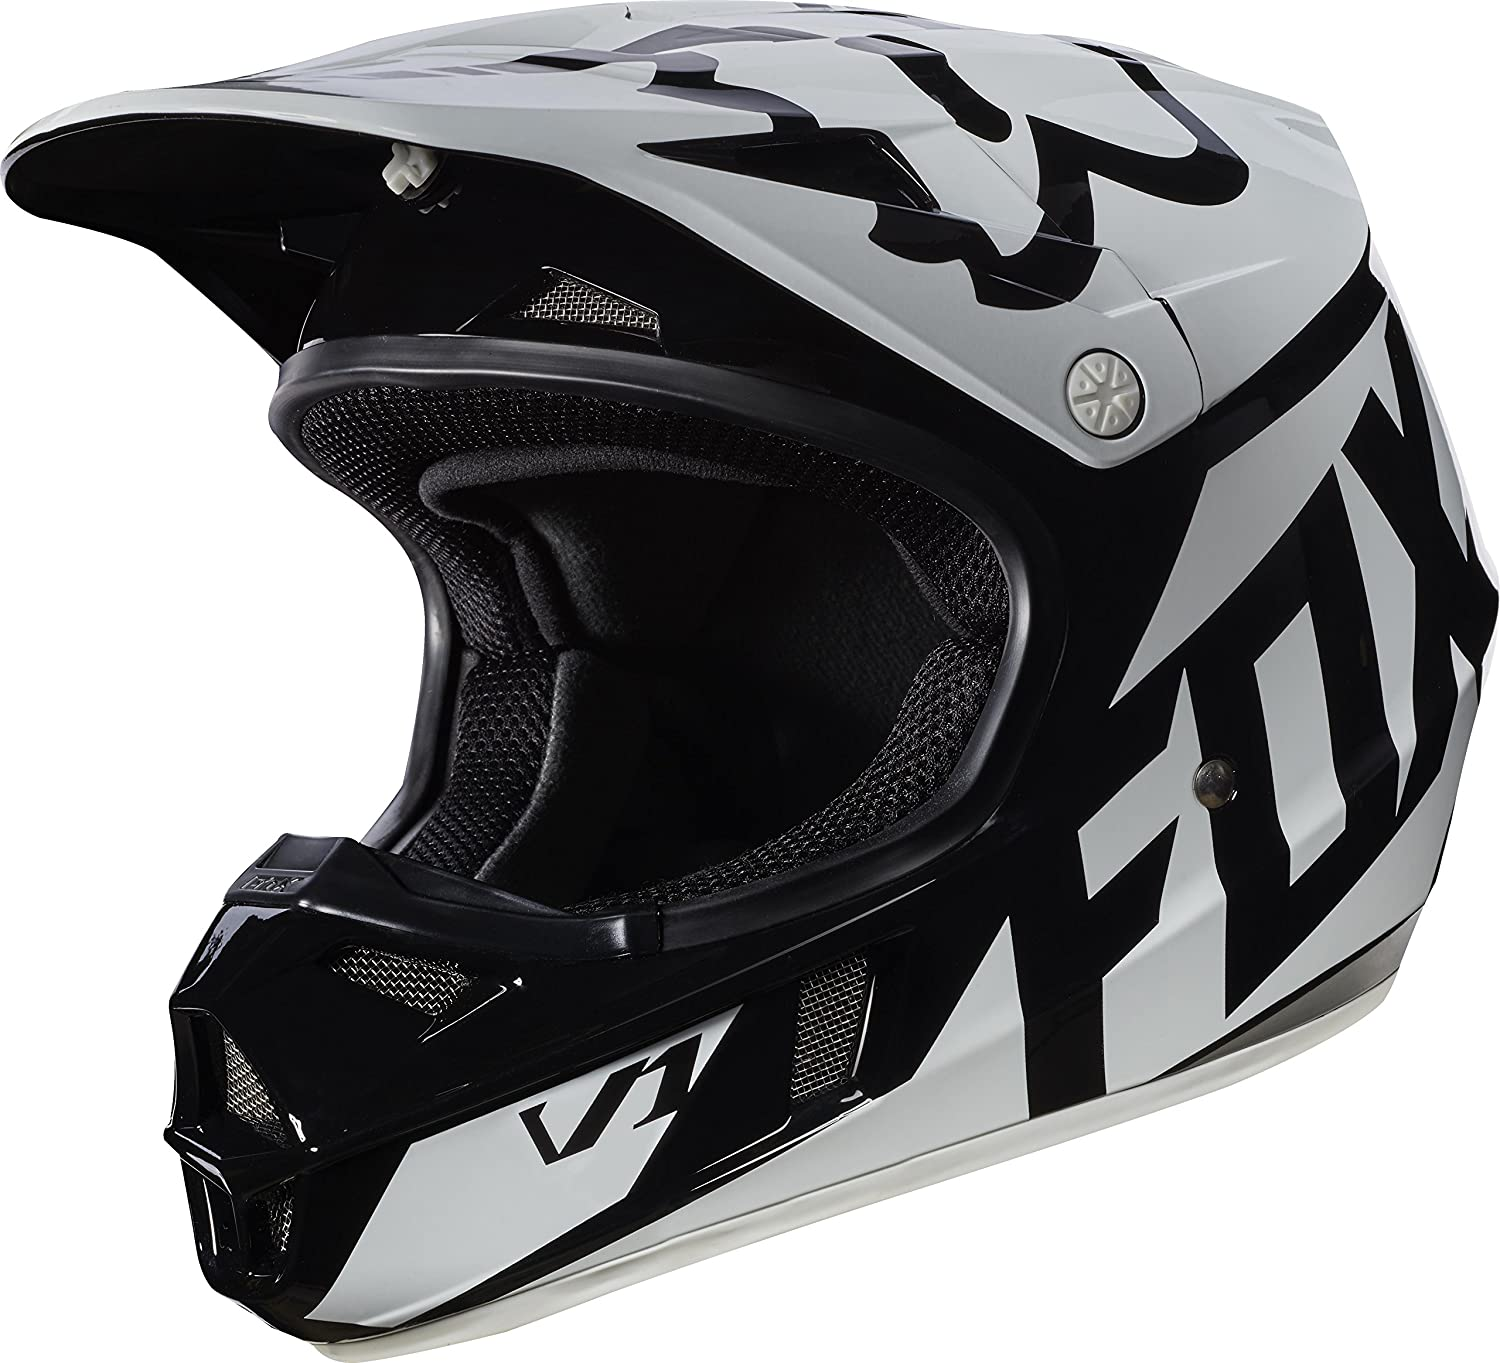 T2017 Fox Racing V1 Race Helmet - Youth/Kids Medium - Black COMINU072521